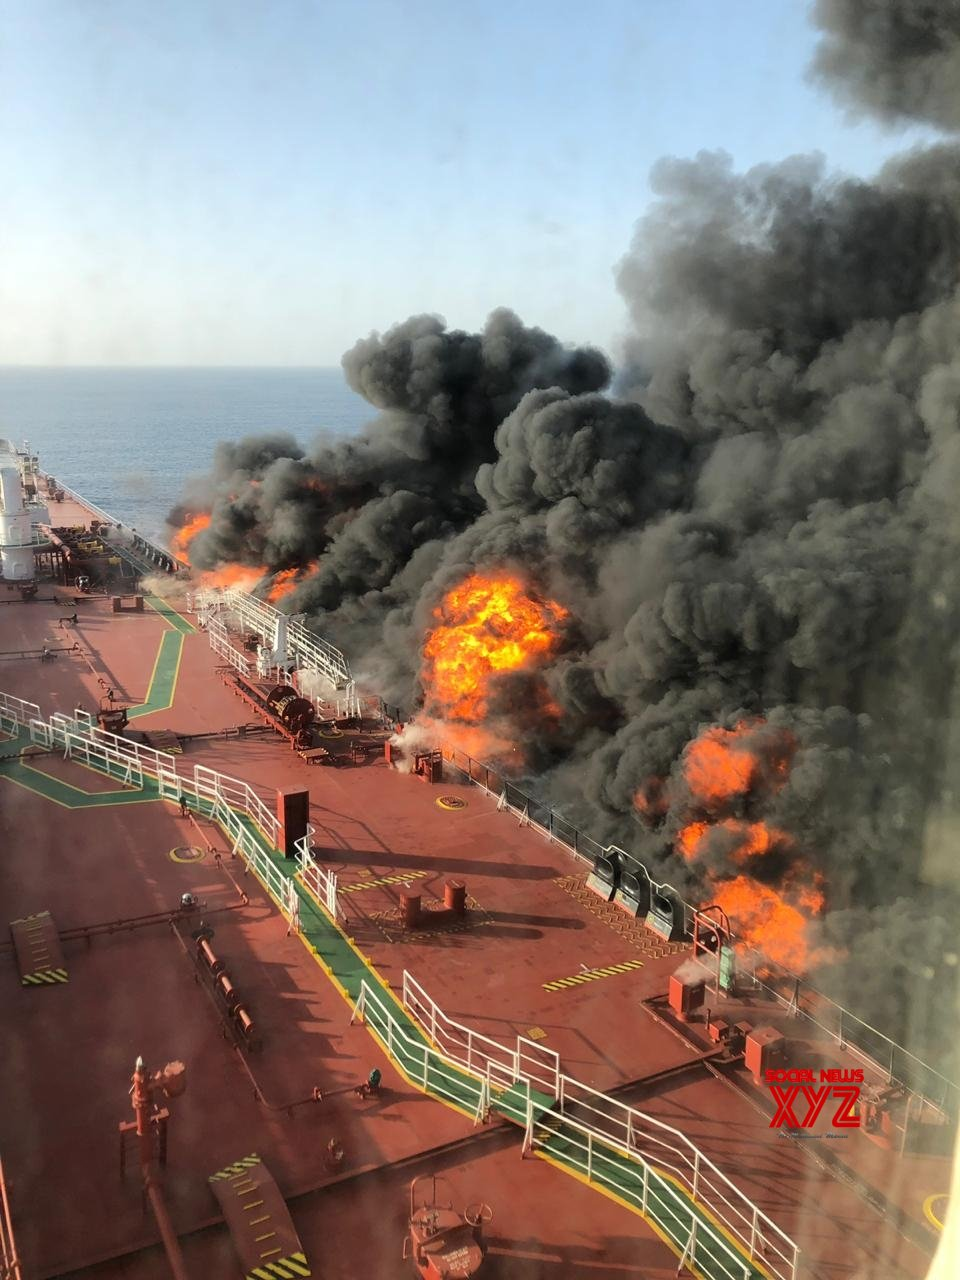 Doha: 2 oil tankers hit in Gulf of Oman, all crew evacuated #Gallery